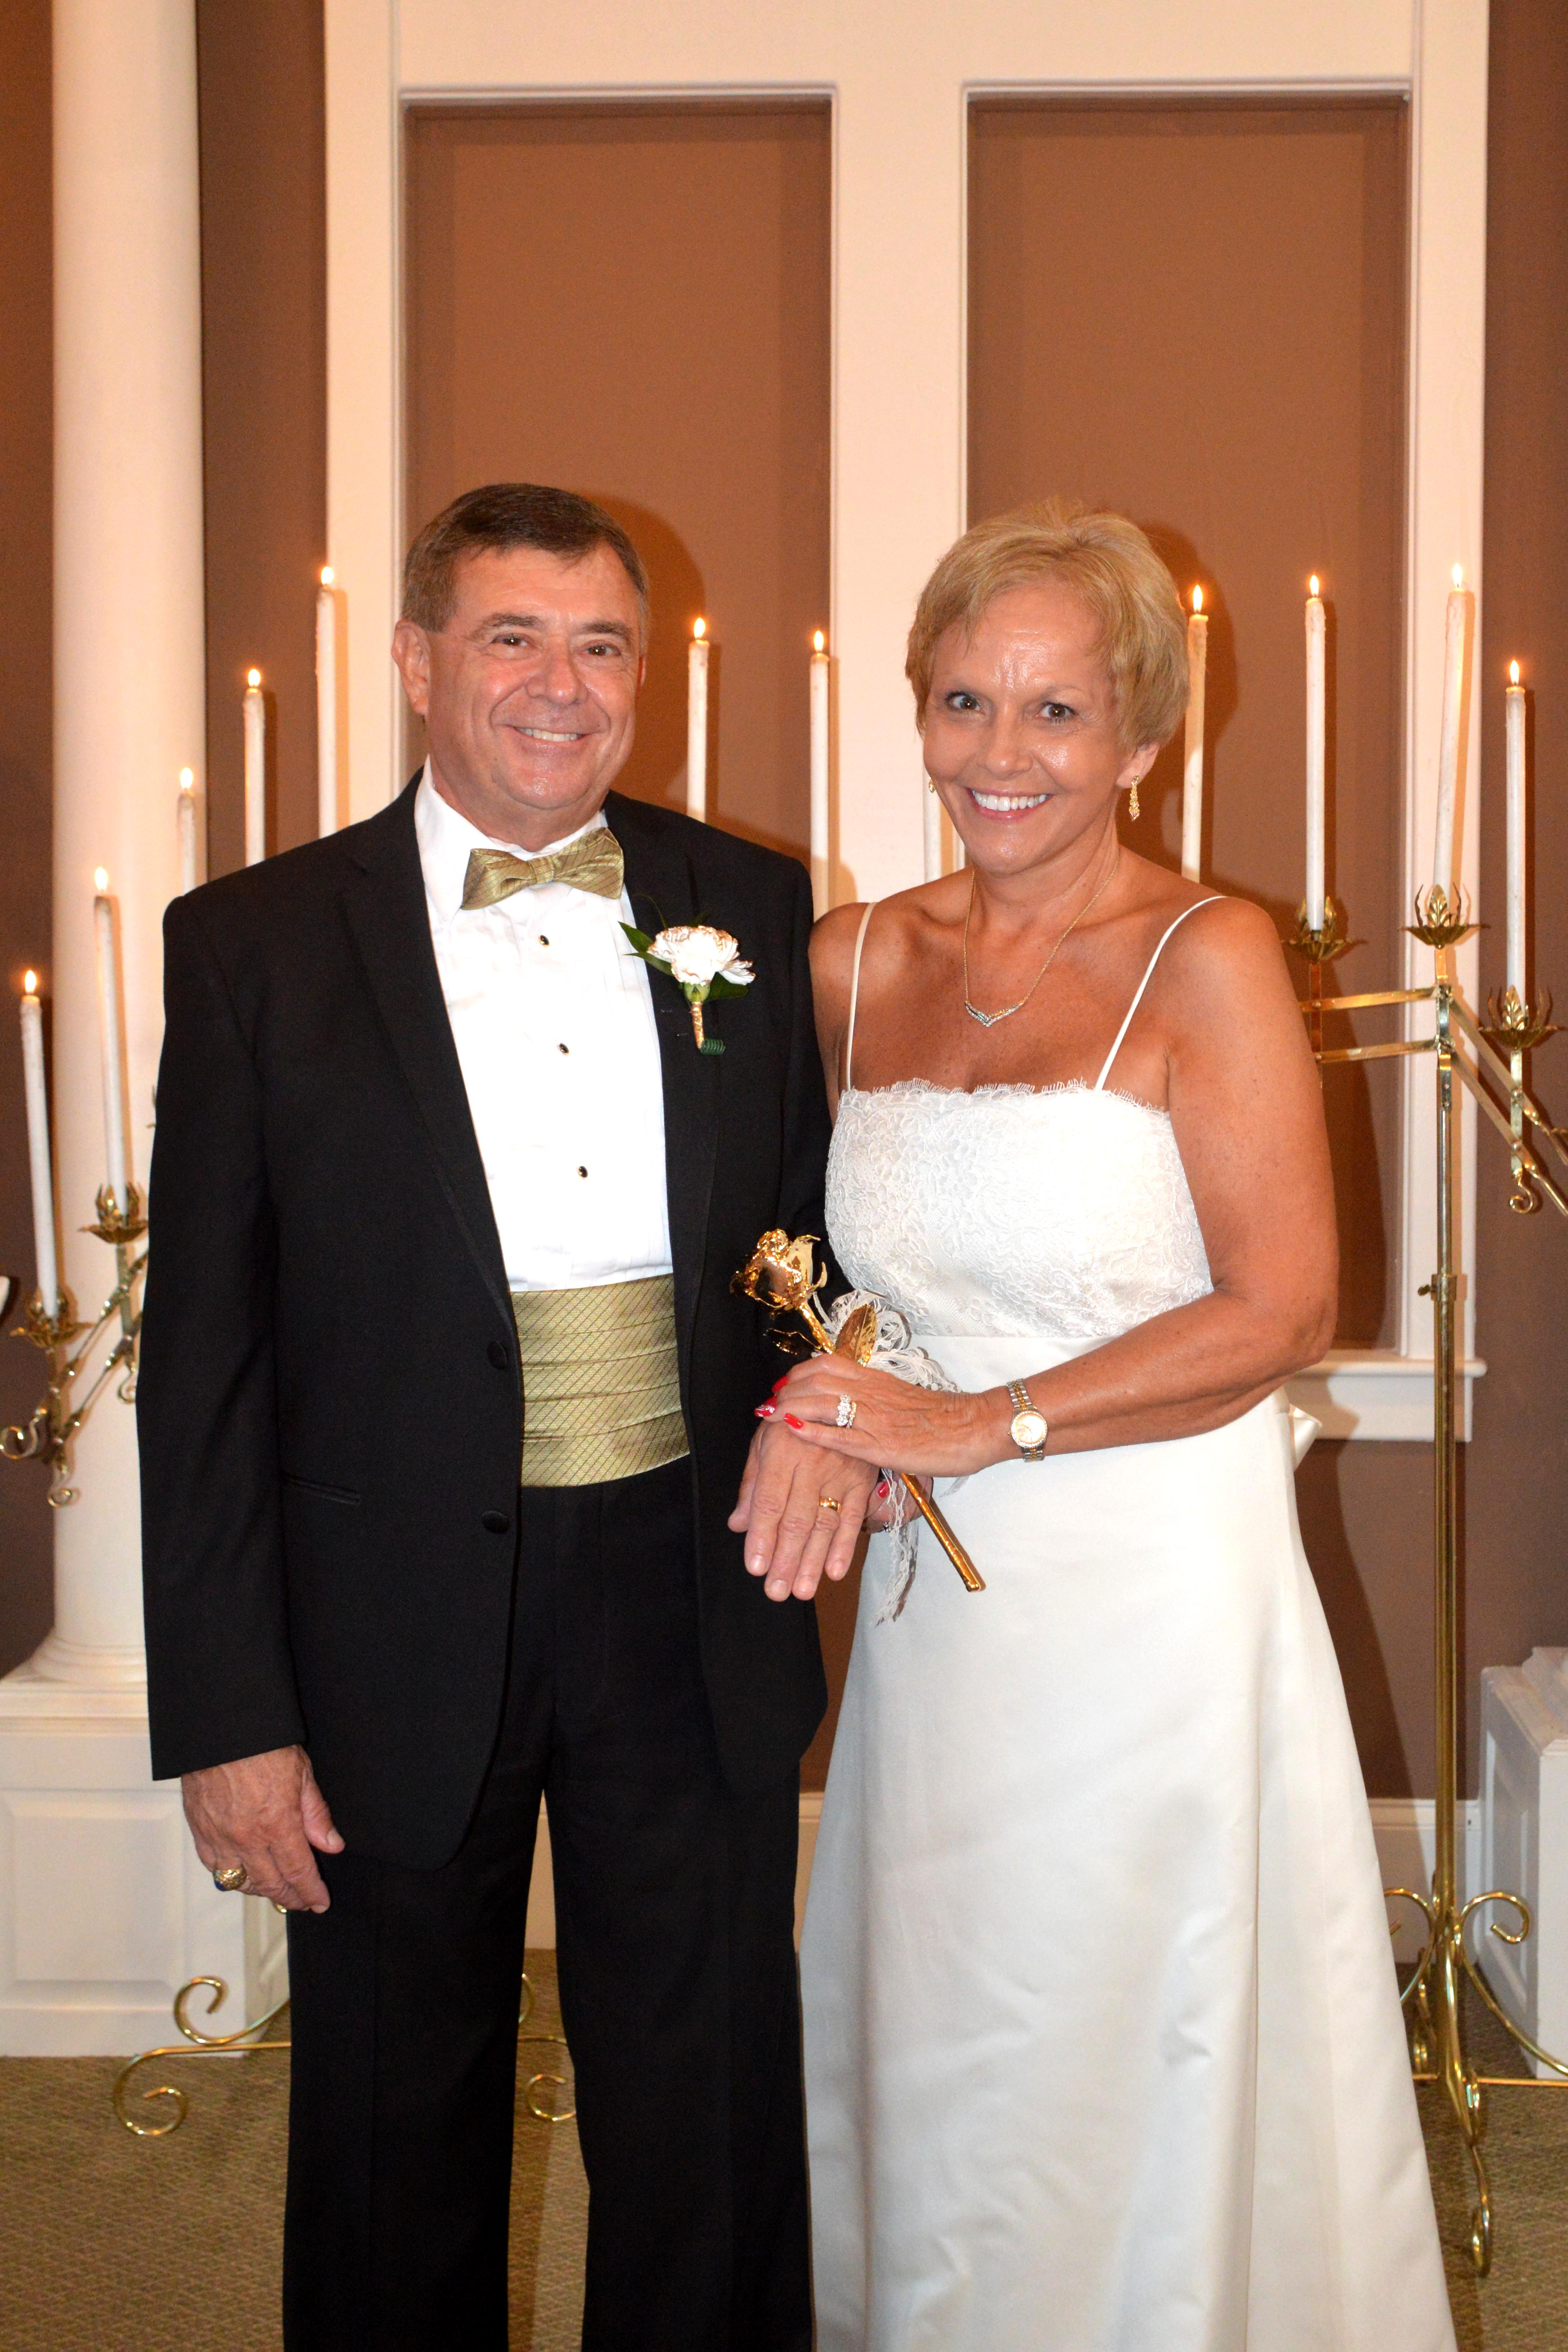 Carolyn Jean Watson And Stephen Donald Floyd Of Myrtle Beach SC Were United In Marriage On August 1 2015 The Chapel At Wedding By Sea